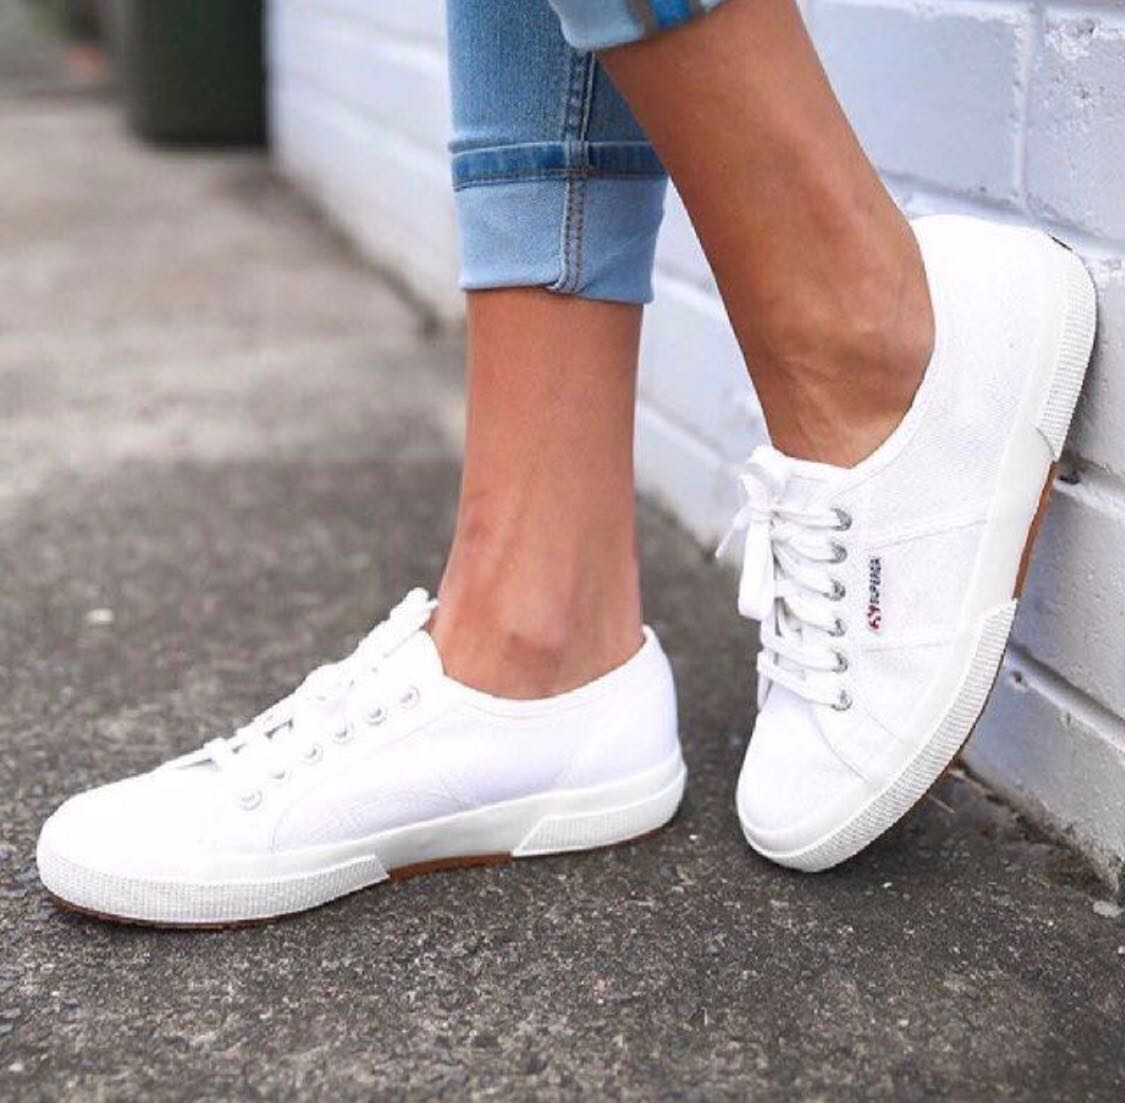 812f70c9 Superga 2750 Cotu Classic White, Women's Fashion, Shoes, Sneakers on  Carousell